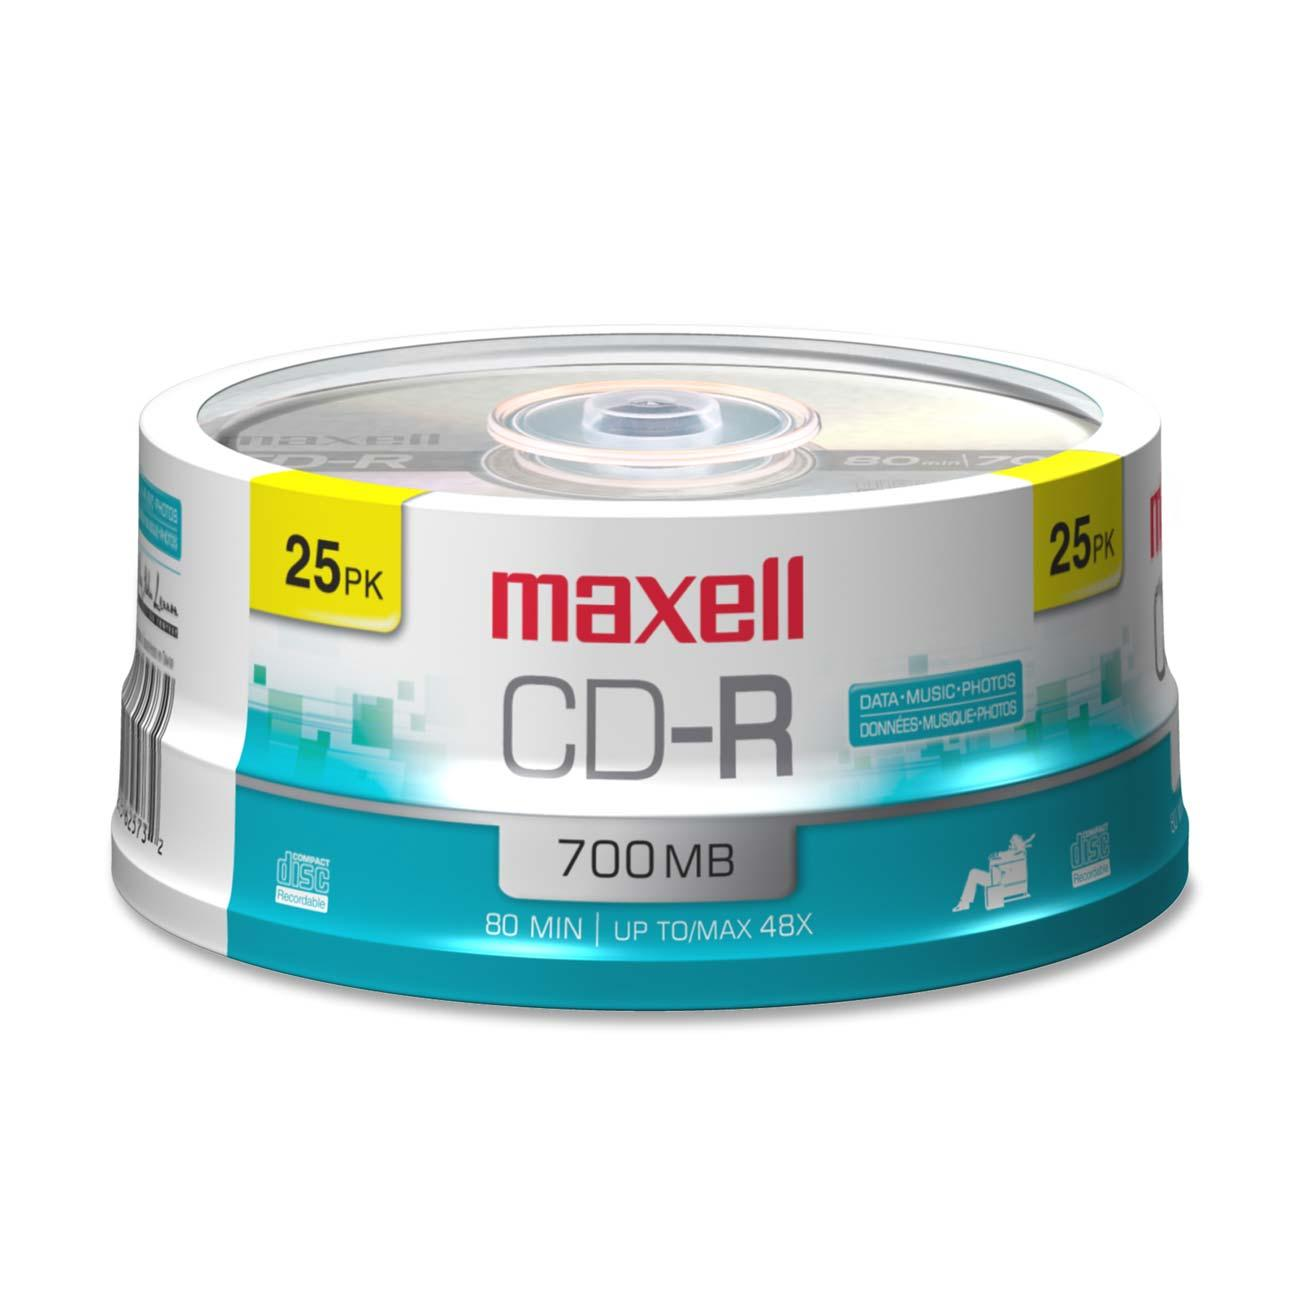 Maxell, MAX648445, Branded Surface CD-R Discs Spindle, 25